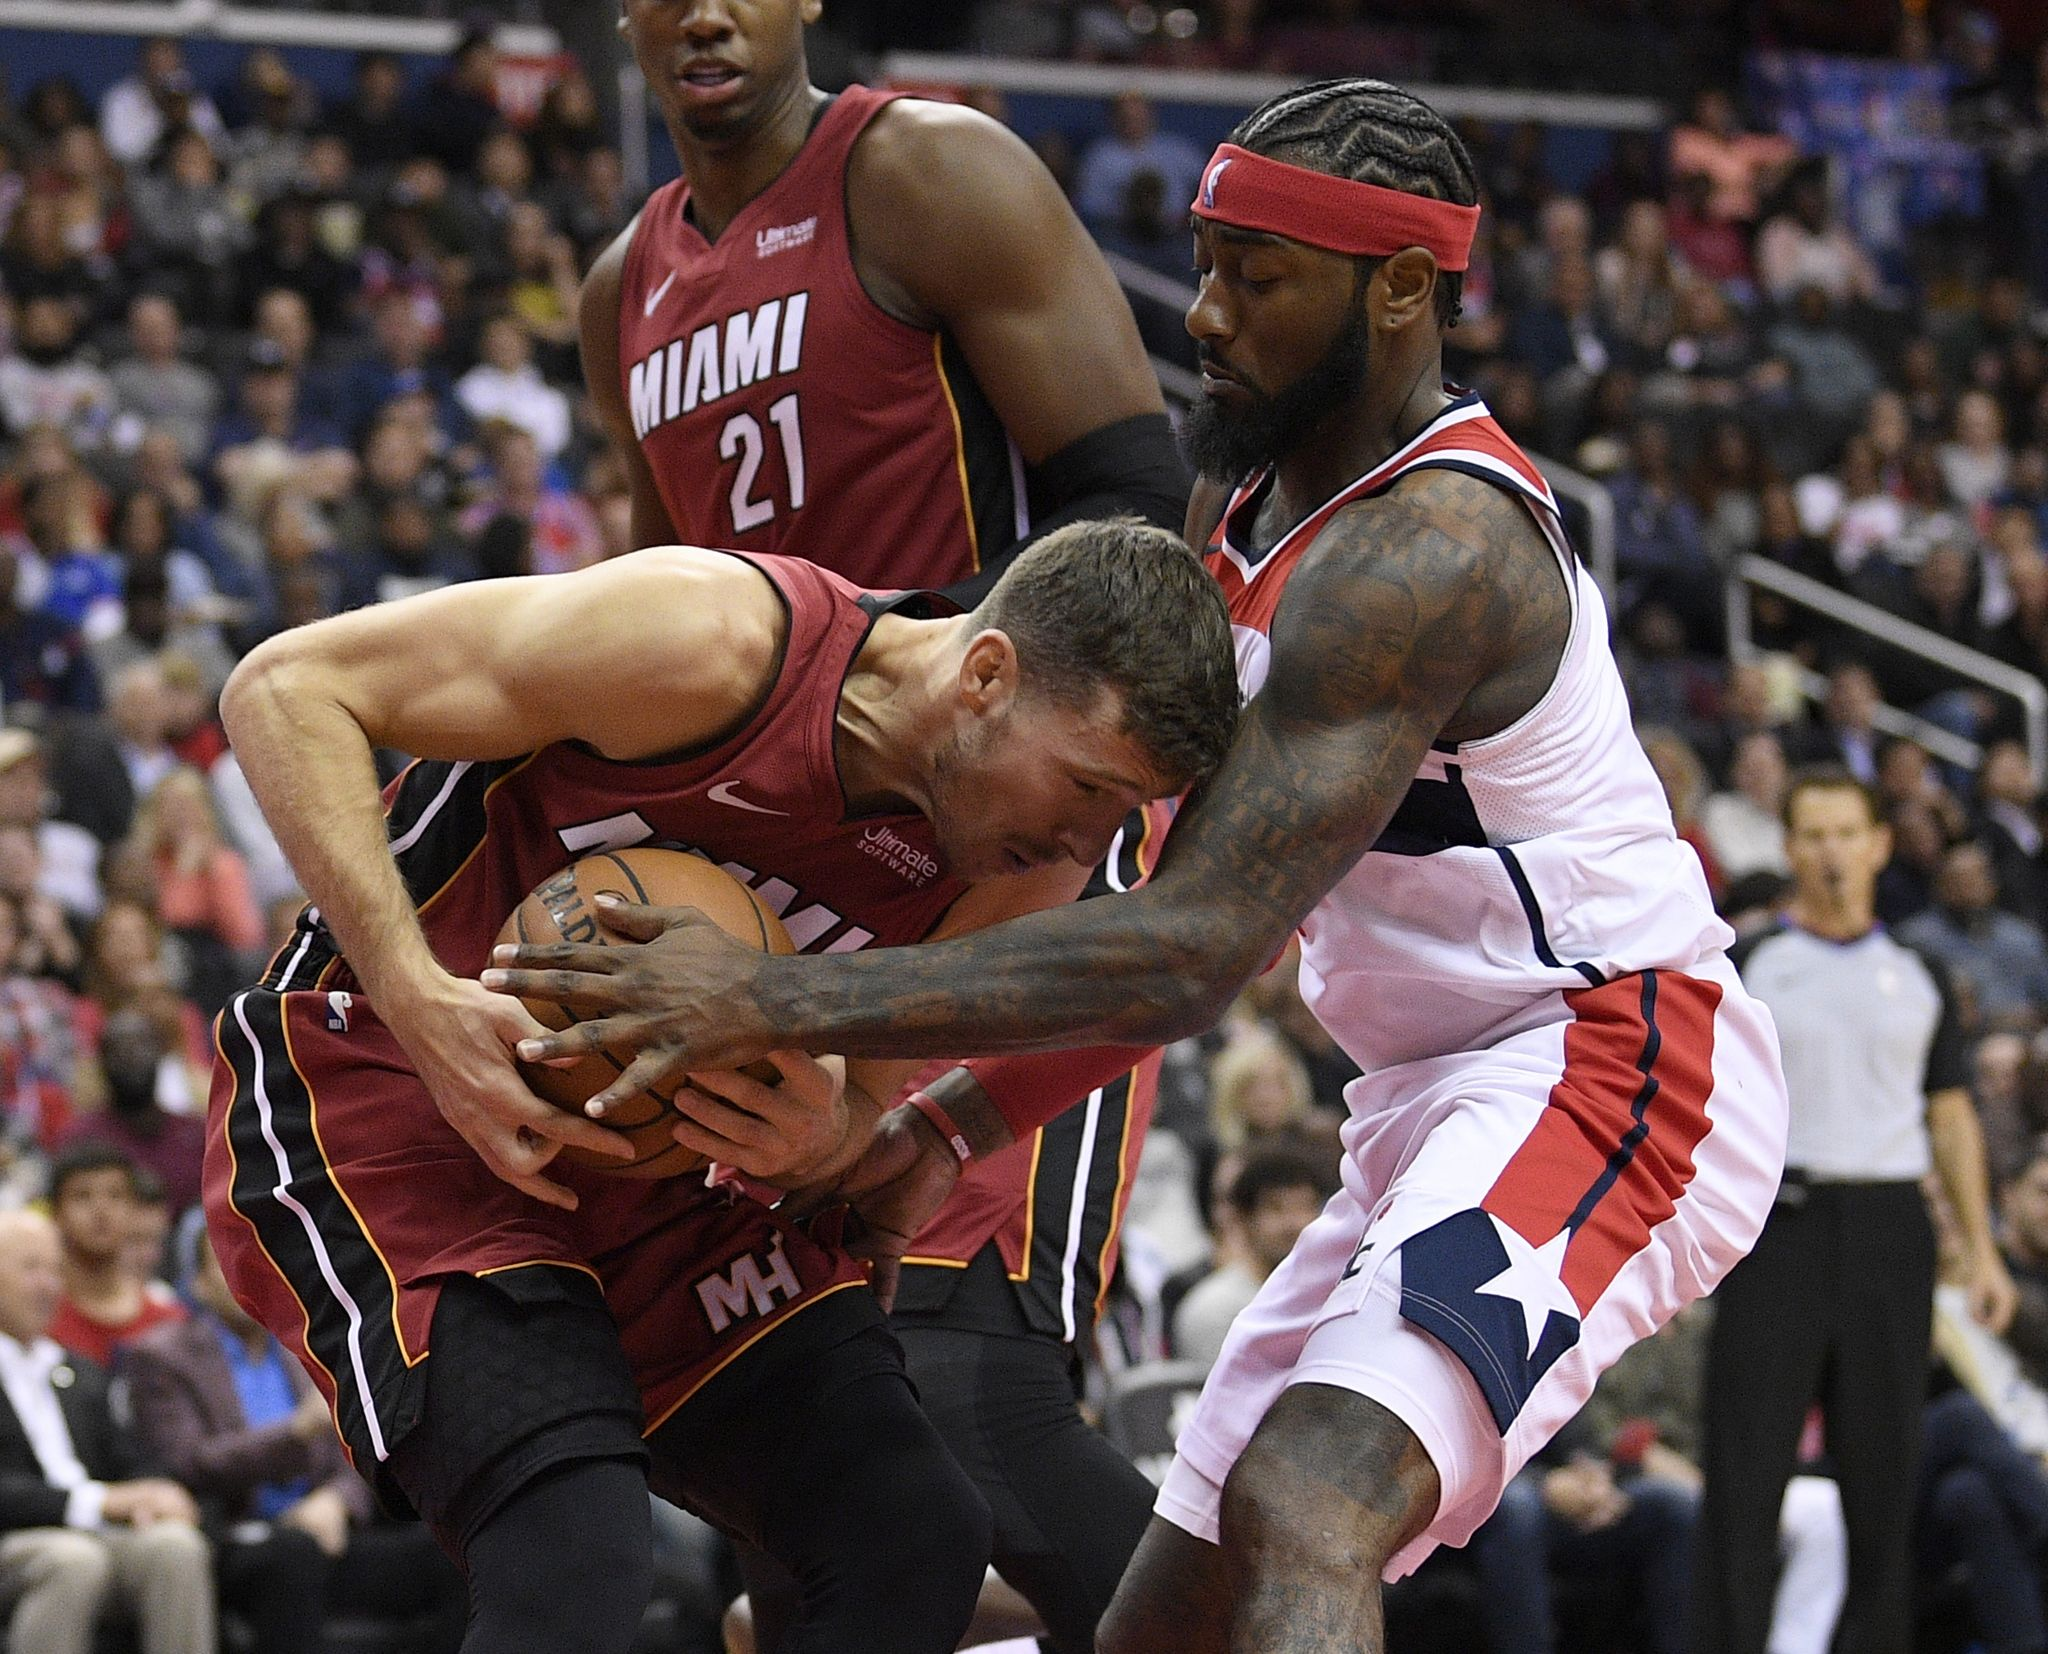 Wizards open season with last-second loss to Heat - Washington Times